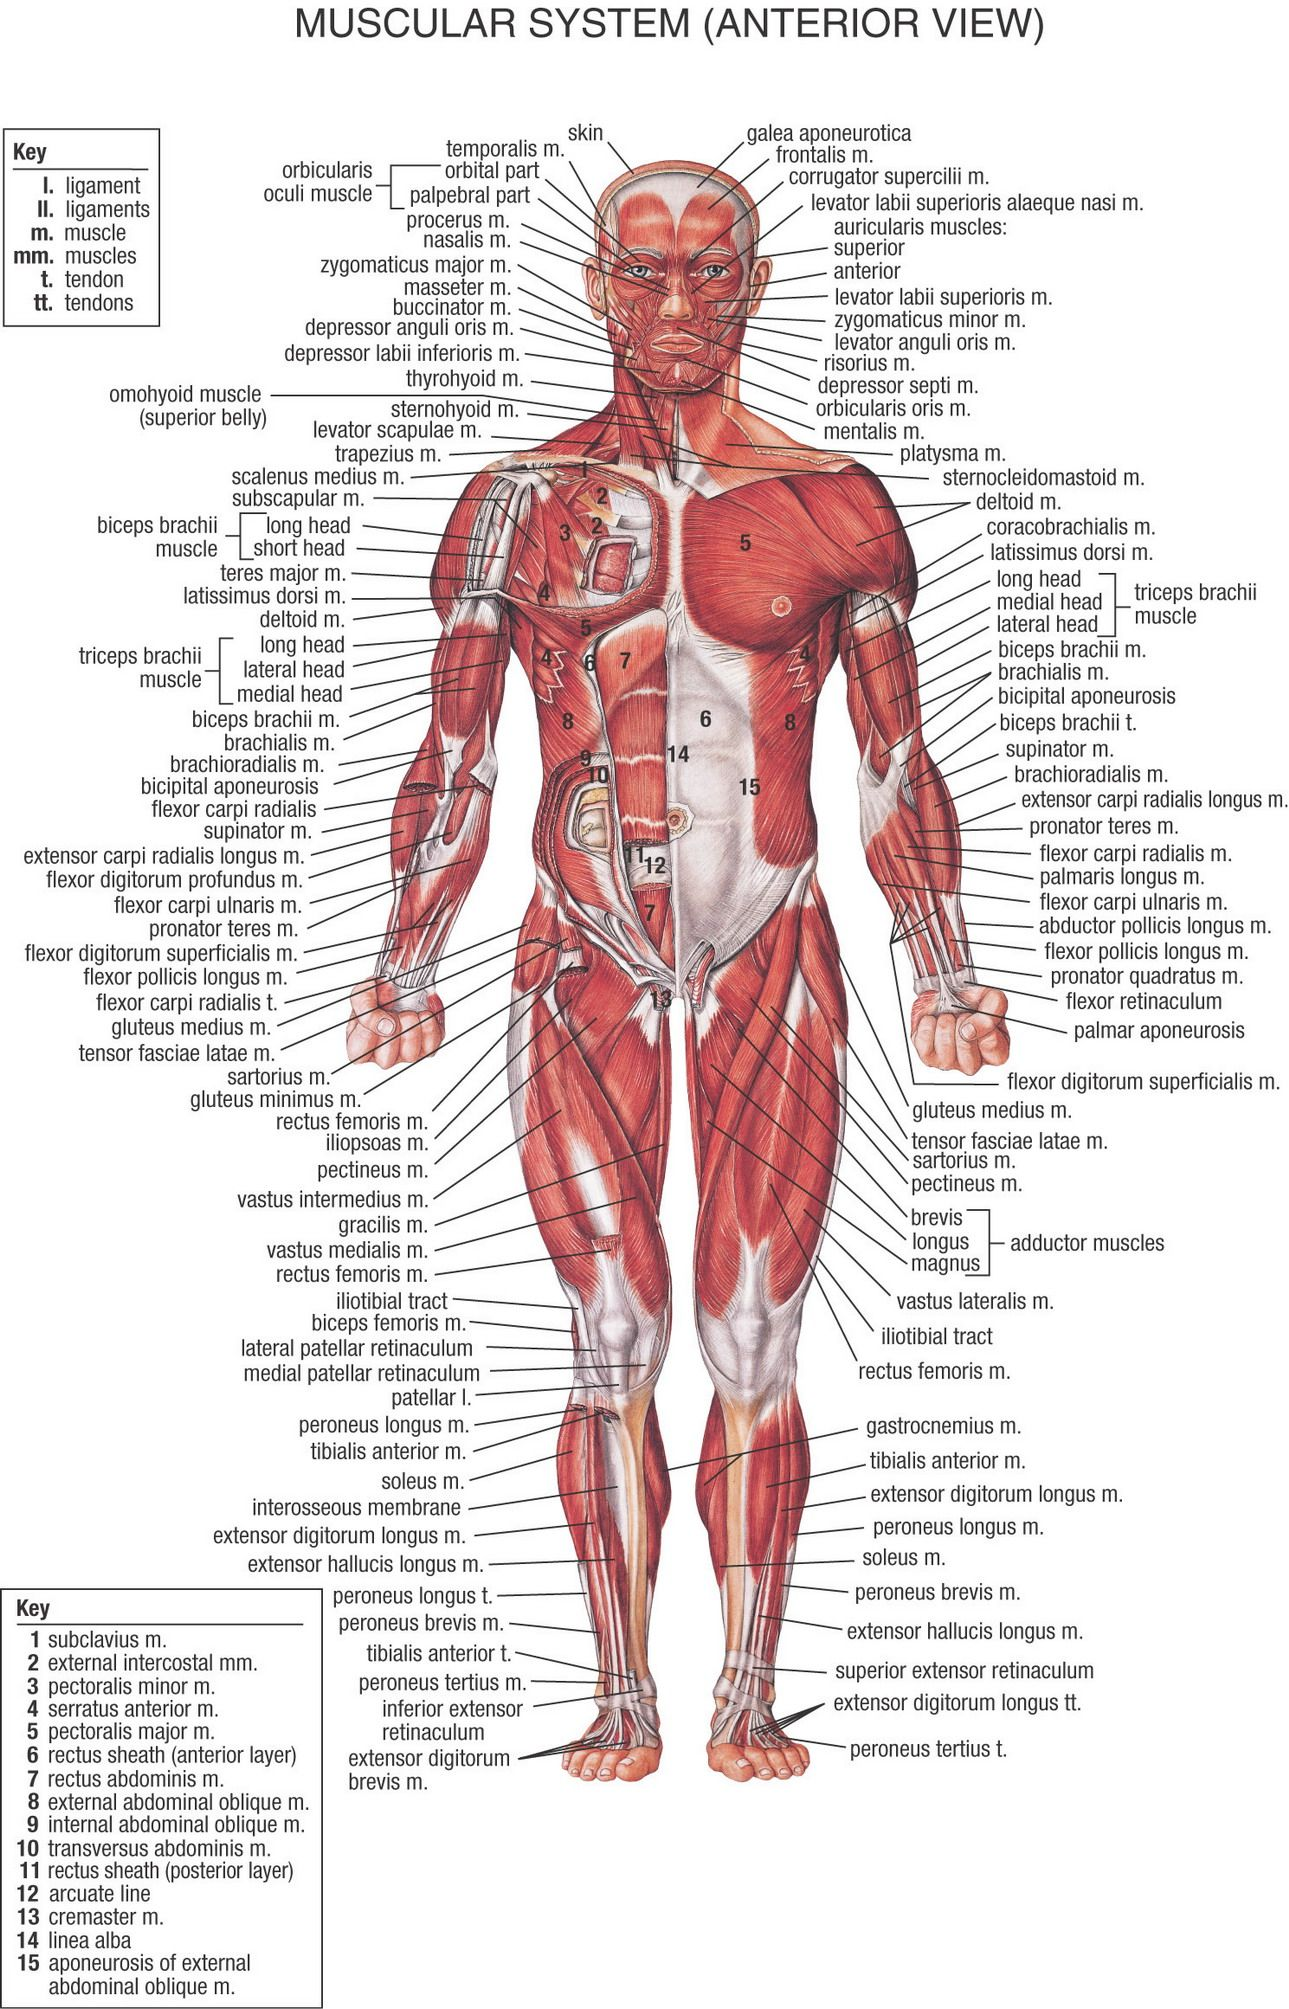 muscular system (anterior view) | Anatomy & Physiology | Pinterest ...